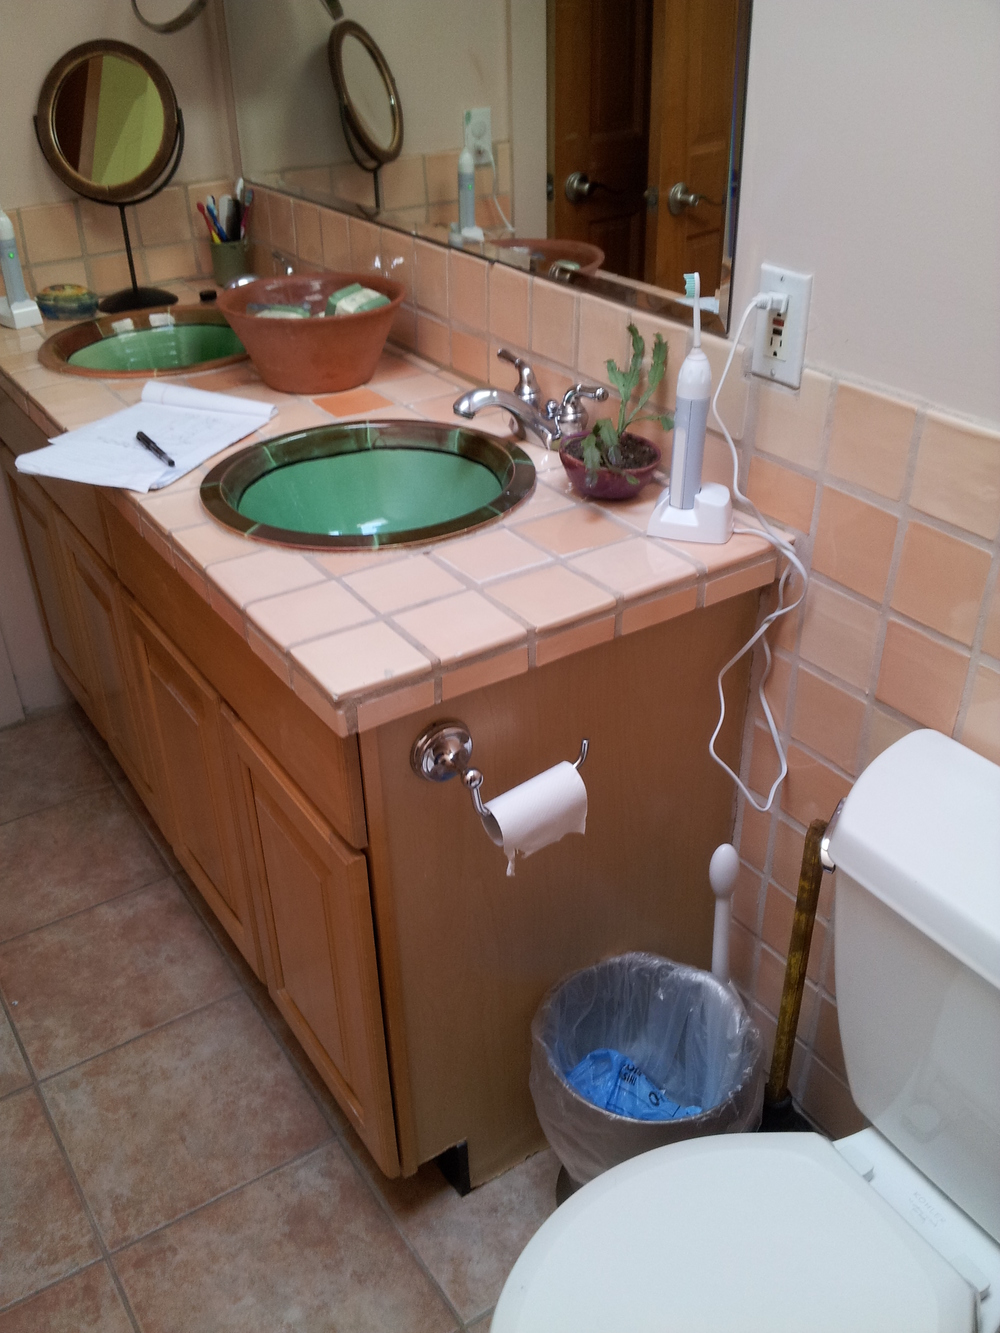 Old house bathroom remodel - This Wonderful Old House In Dowtown Denver Had This Bathroom Added On 20 Years Ago Our Clients Felt That 2015 Was A Great Year For An Uplift